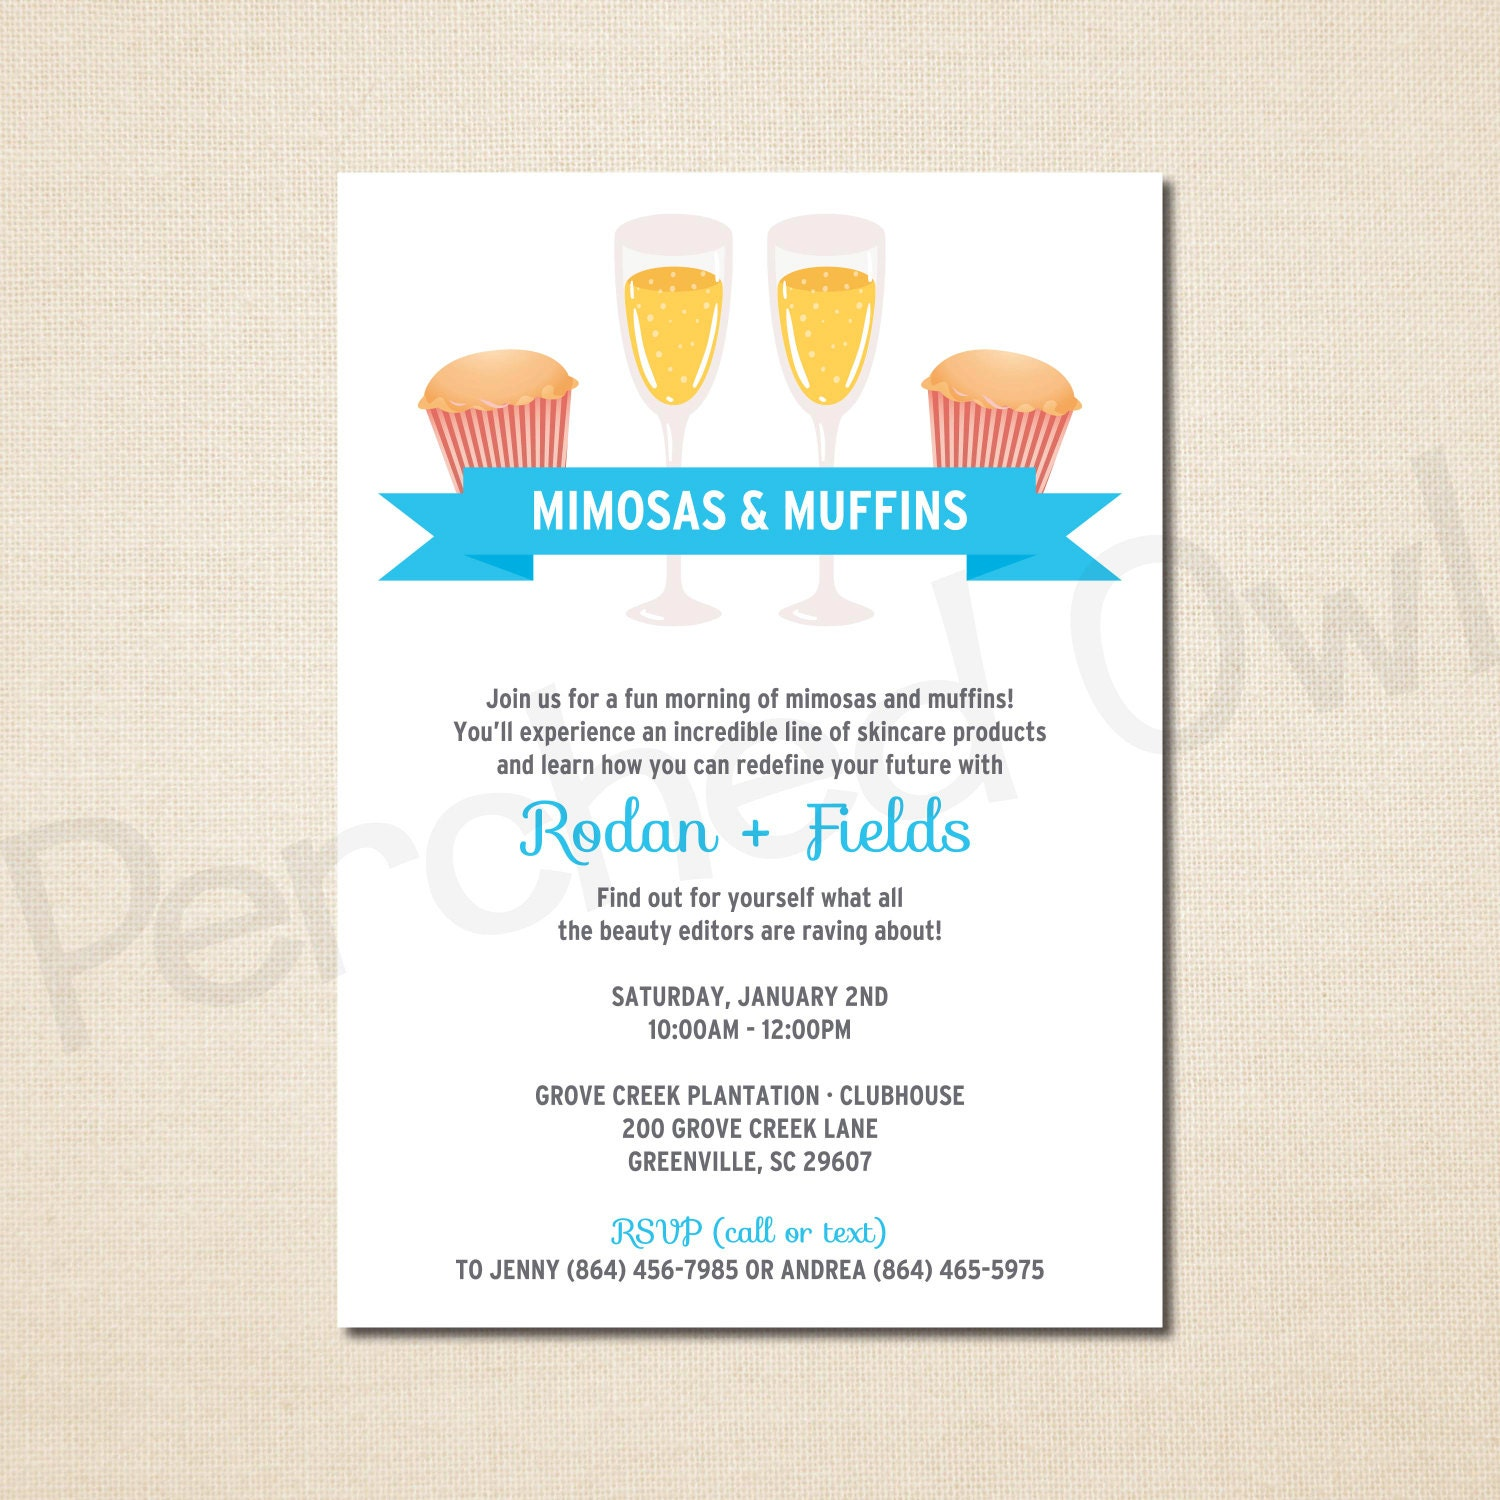 Selling business cards on etsy image collections card design and selling business cards on etsy choice image card design and card mimosas muffins invitation direct selling reheart Image collections